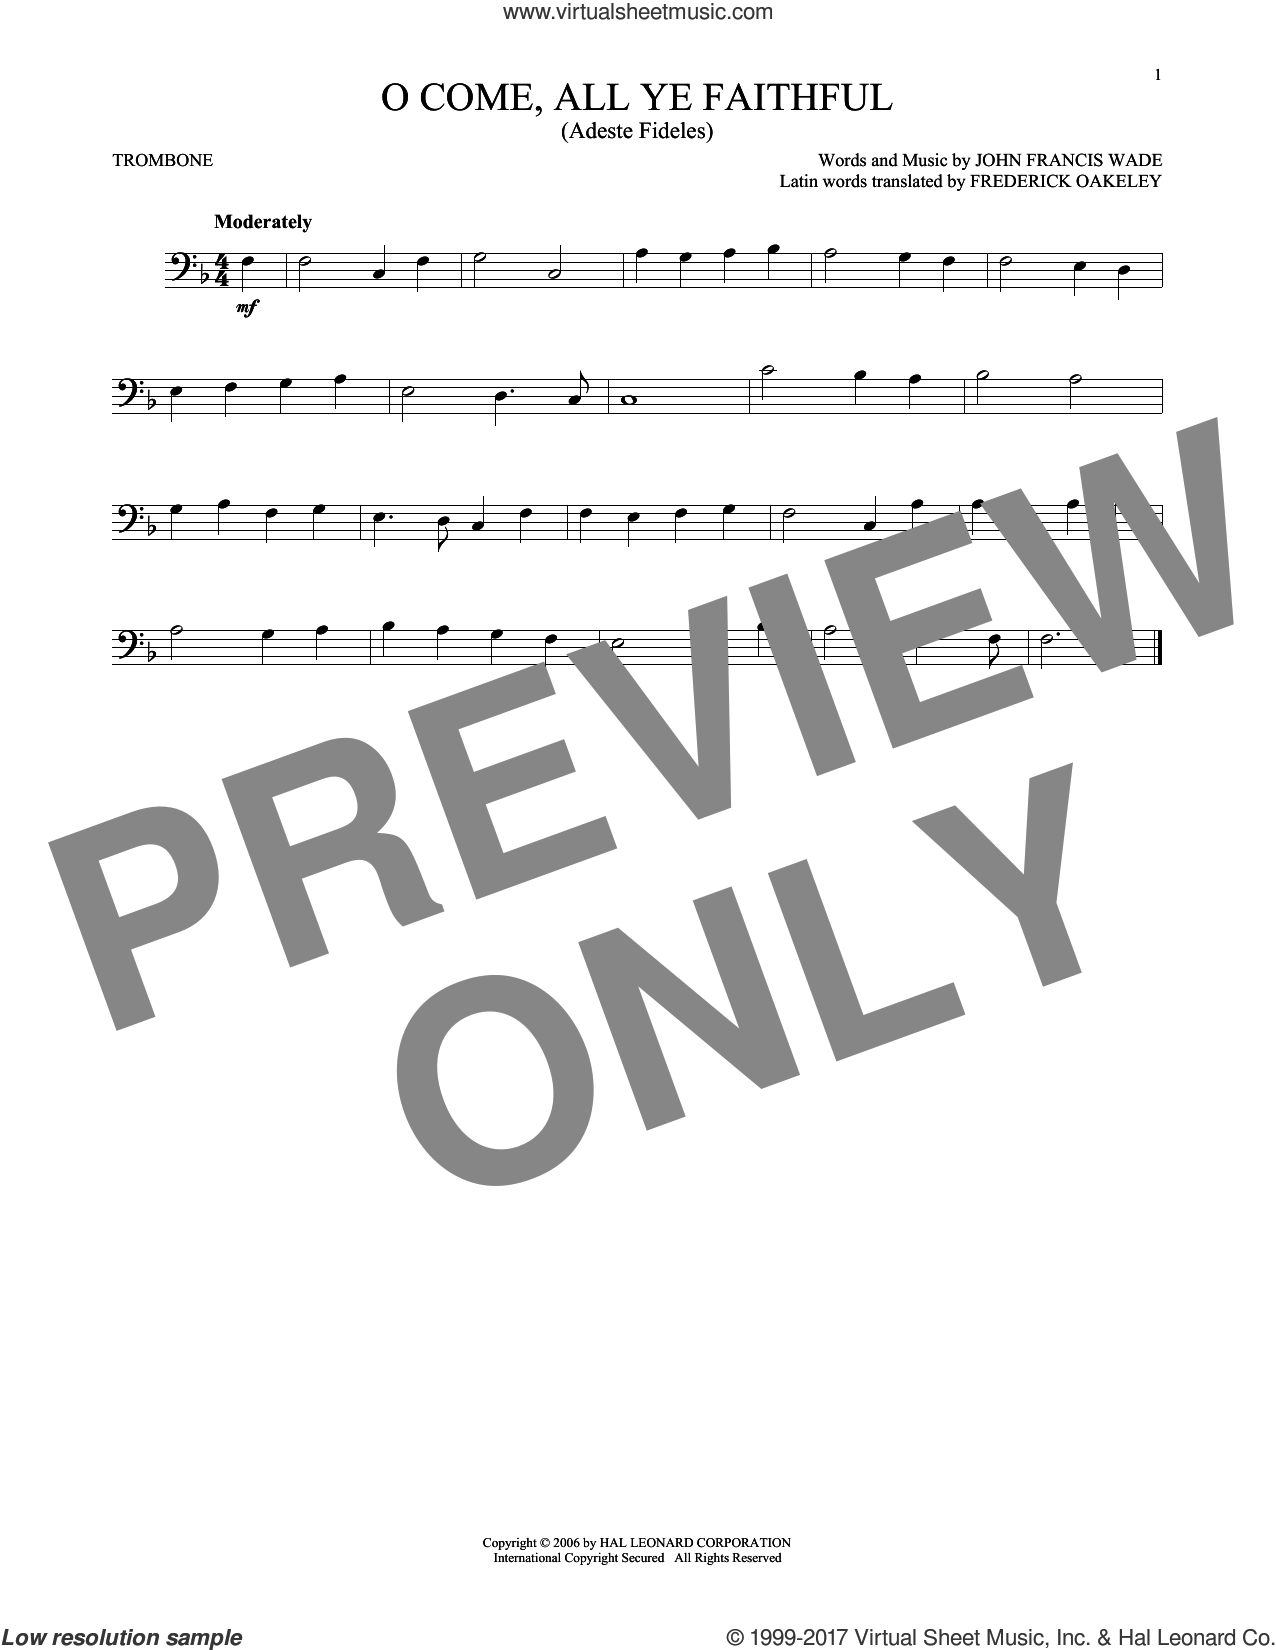 O Come, All Ye Faithful sheet music for trombone solo by John Francis Wade, classical score, intermediate. Score Image Preview.